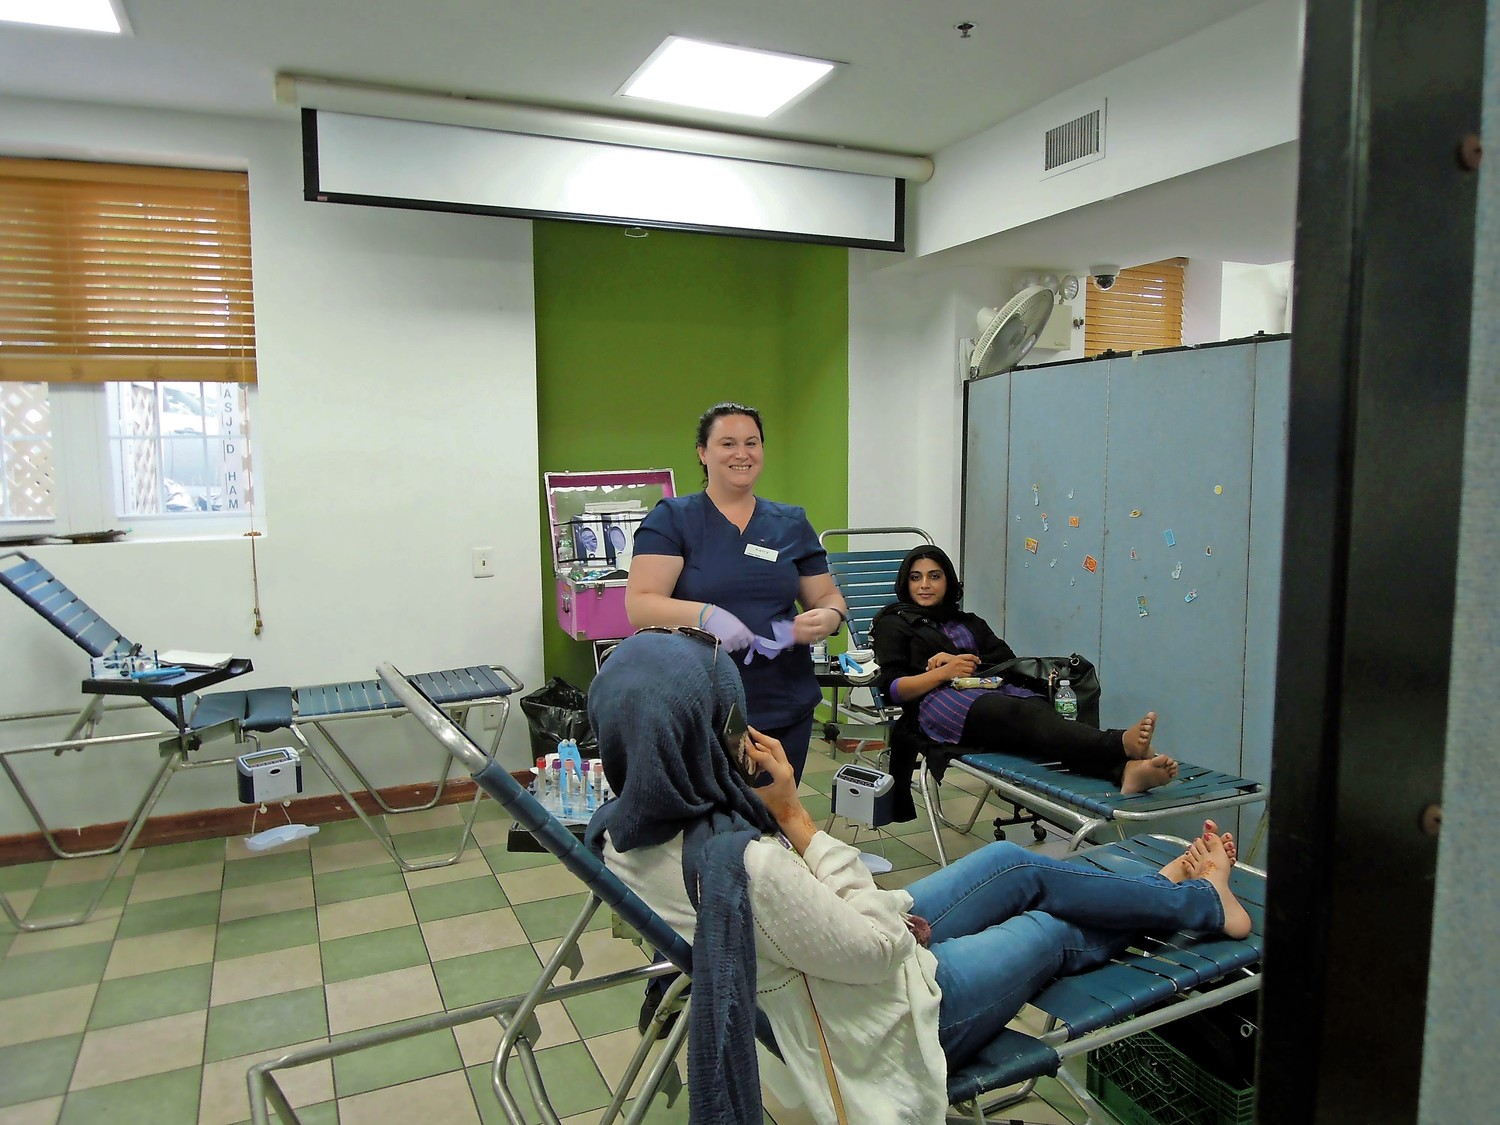 Women relaxed with a snack after donating blood.